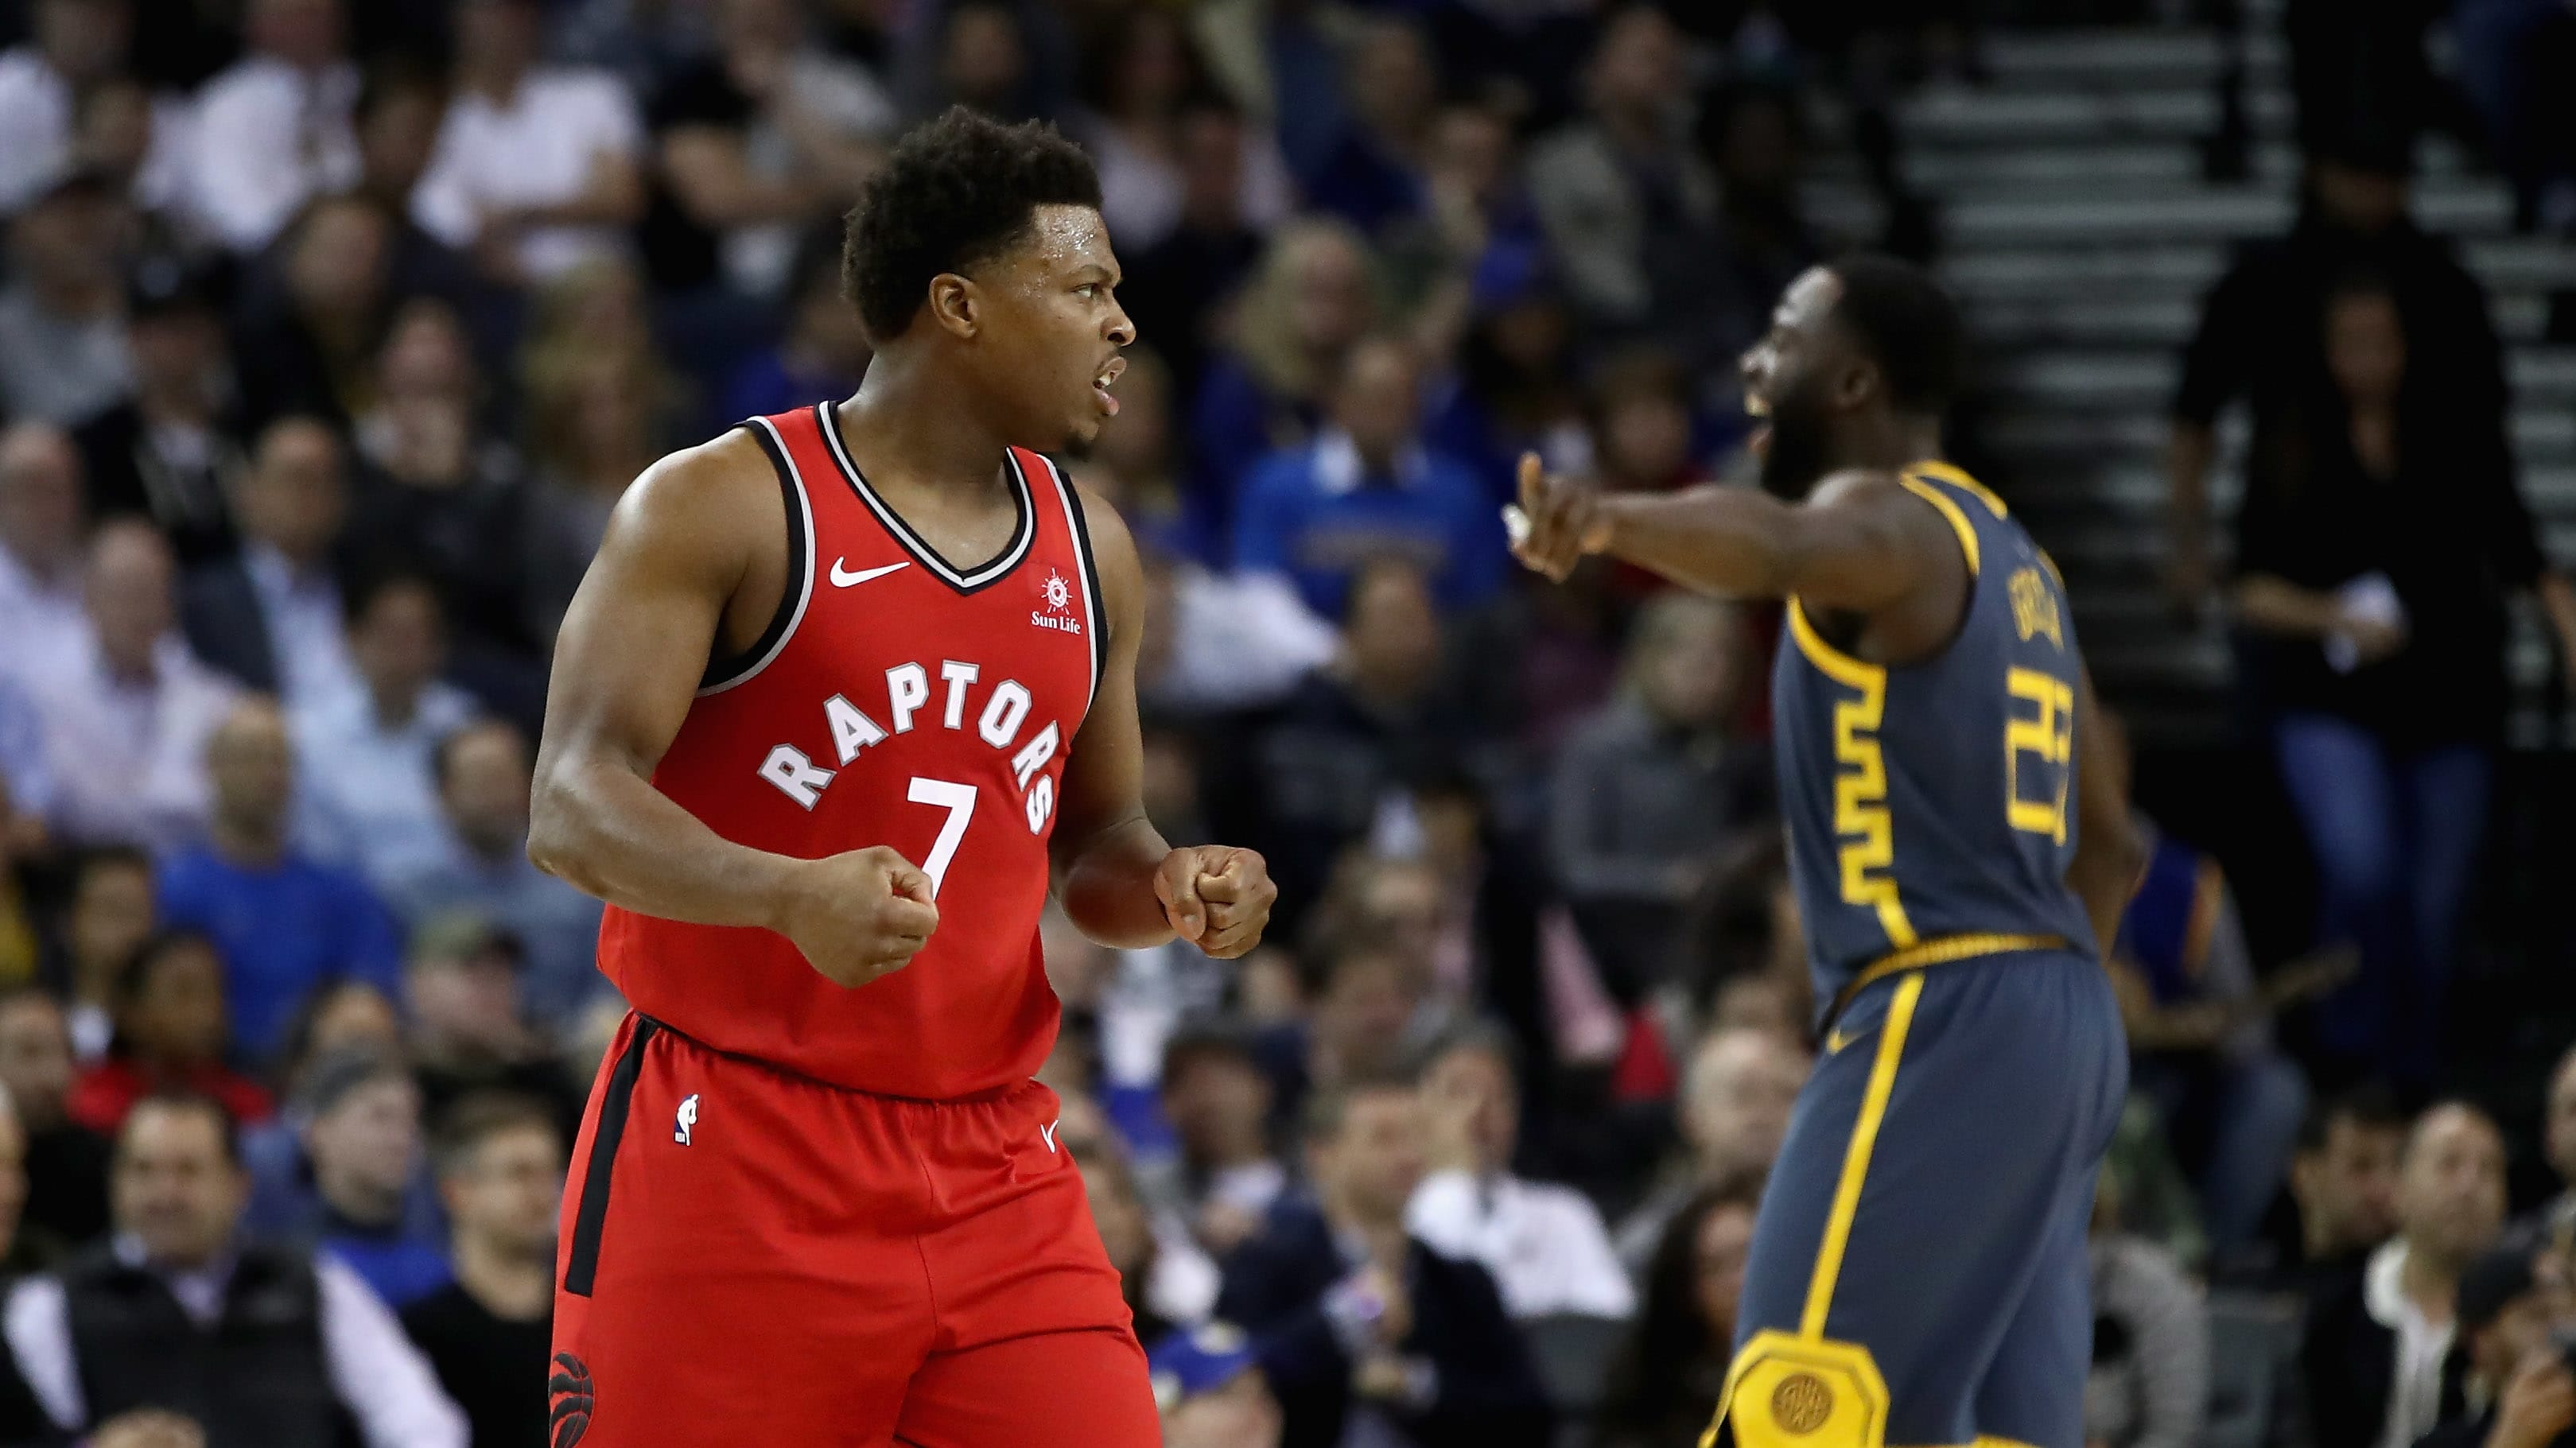 OAKLAND, CA - DECEMBER 12:  Kyle Lowry #7 of the Toronto Raptors reacts after Greg Monroe #15 made a basket against the Golden State Warriors at ORACLE Arena on December 12, 2018 in Oakland, California.  NOTE TO USER: User expressly acknowledges and agrees that, by downloading and or using this photograph, User is consenting to the terms and conditions of the Getty Images License Agreement.  (Photo by Ezra Shaw/Getty Images)